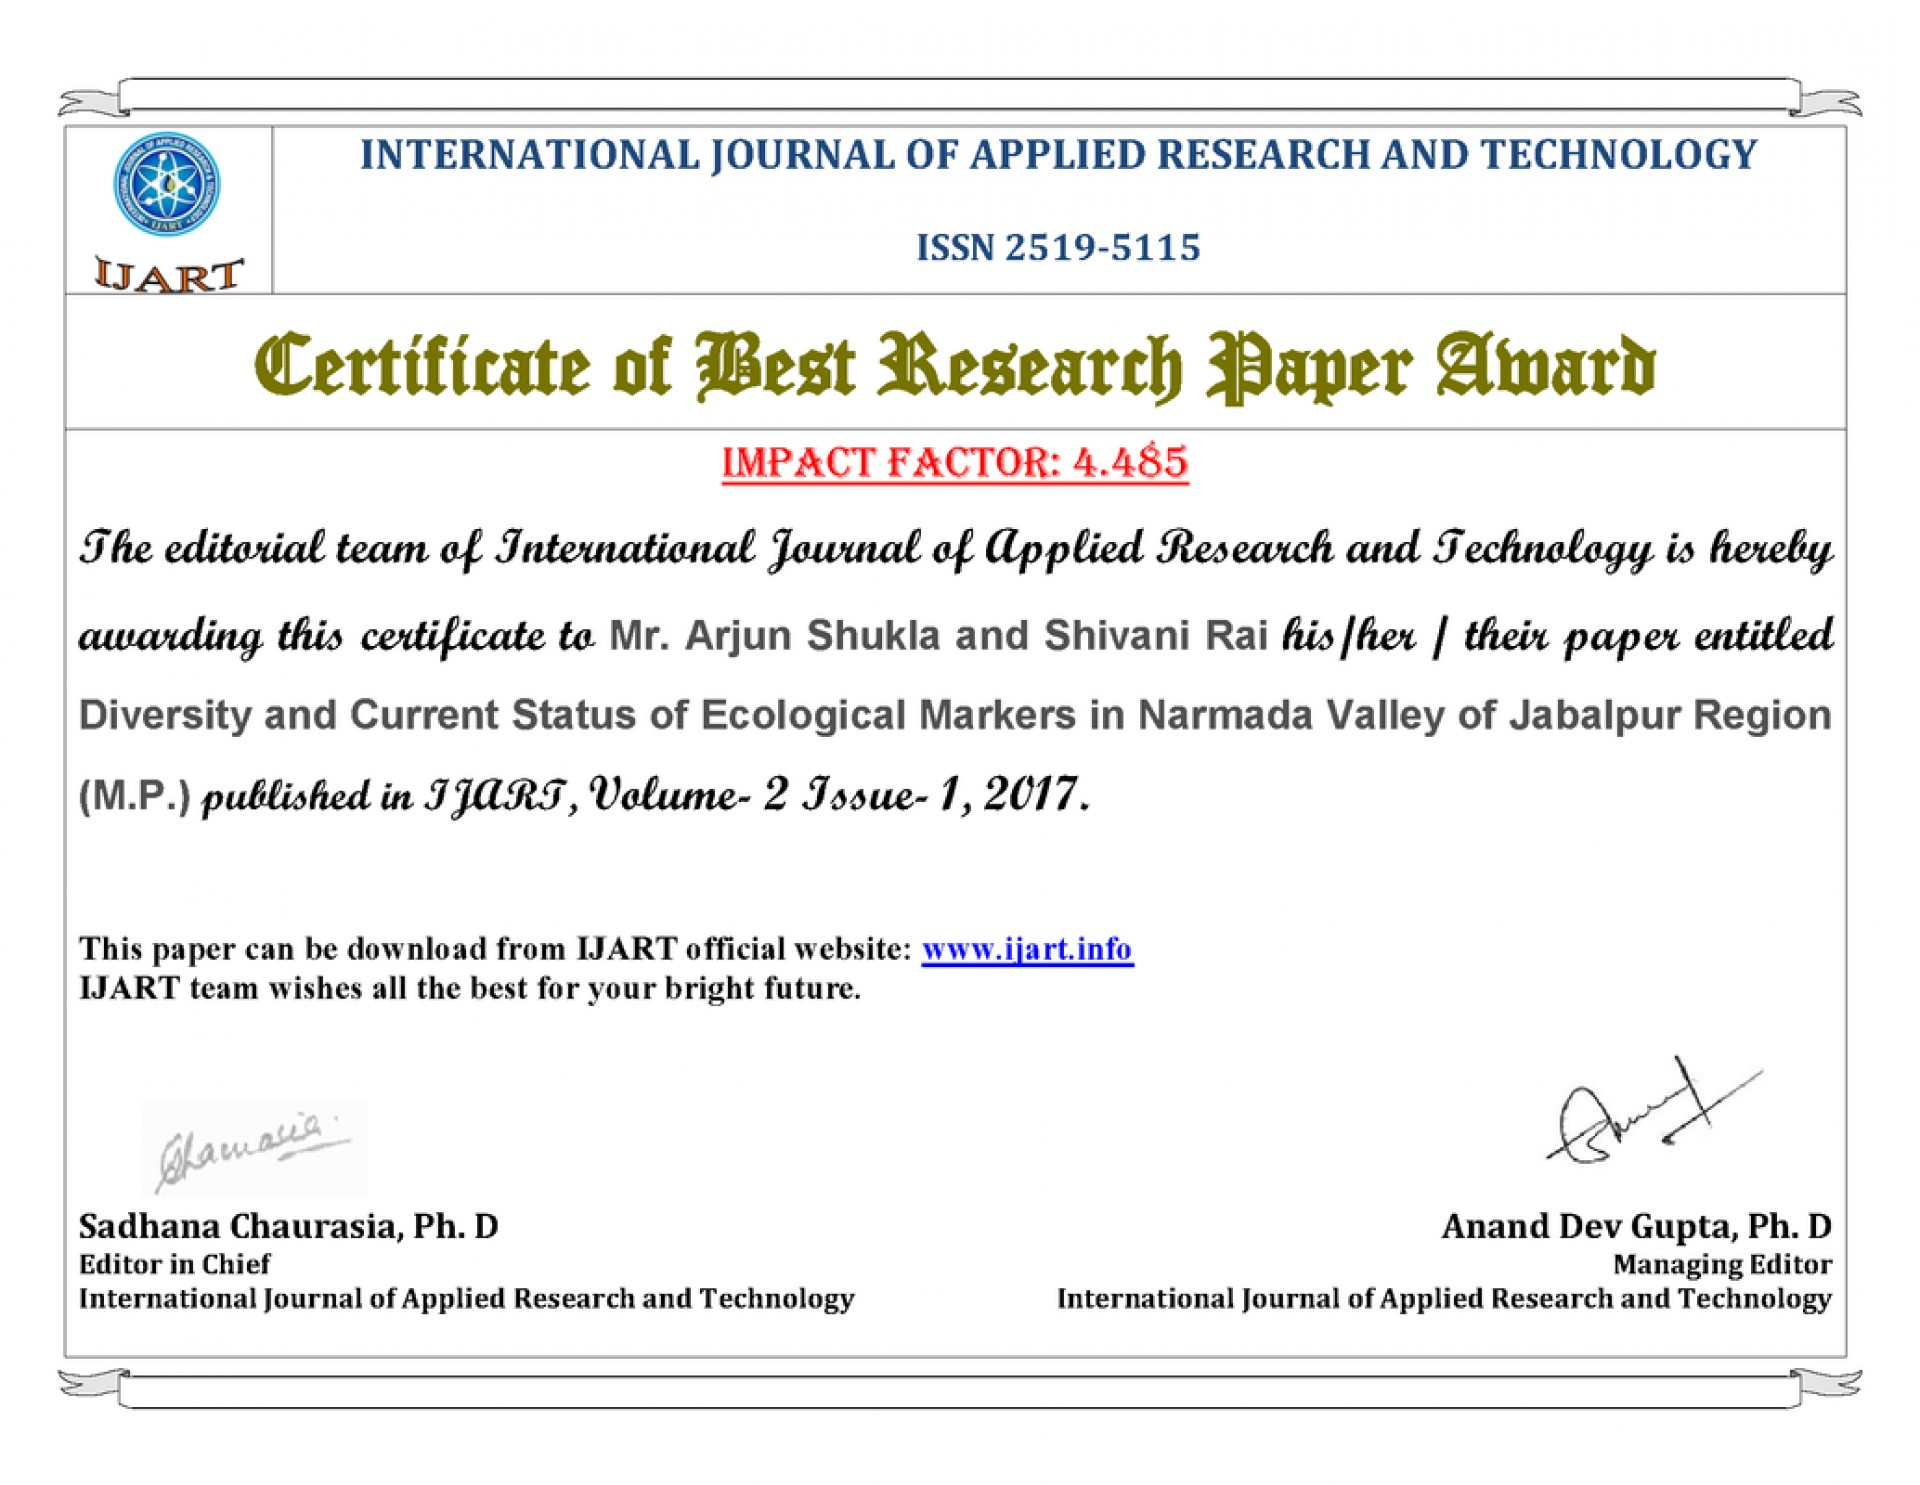 005 Certificate 1 Orig Research Paper Best Website For Downloading Top Papers Site To Download Free 1920